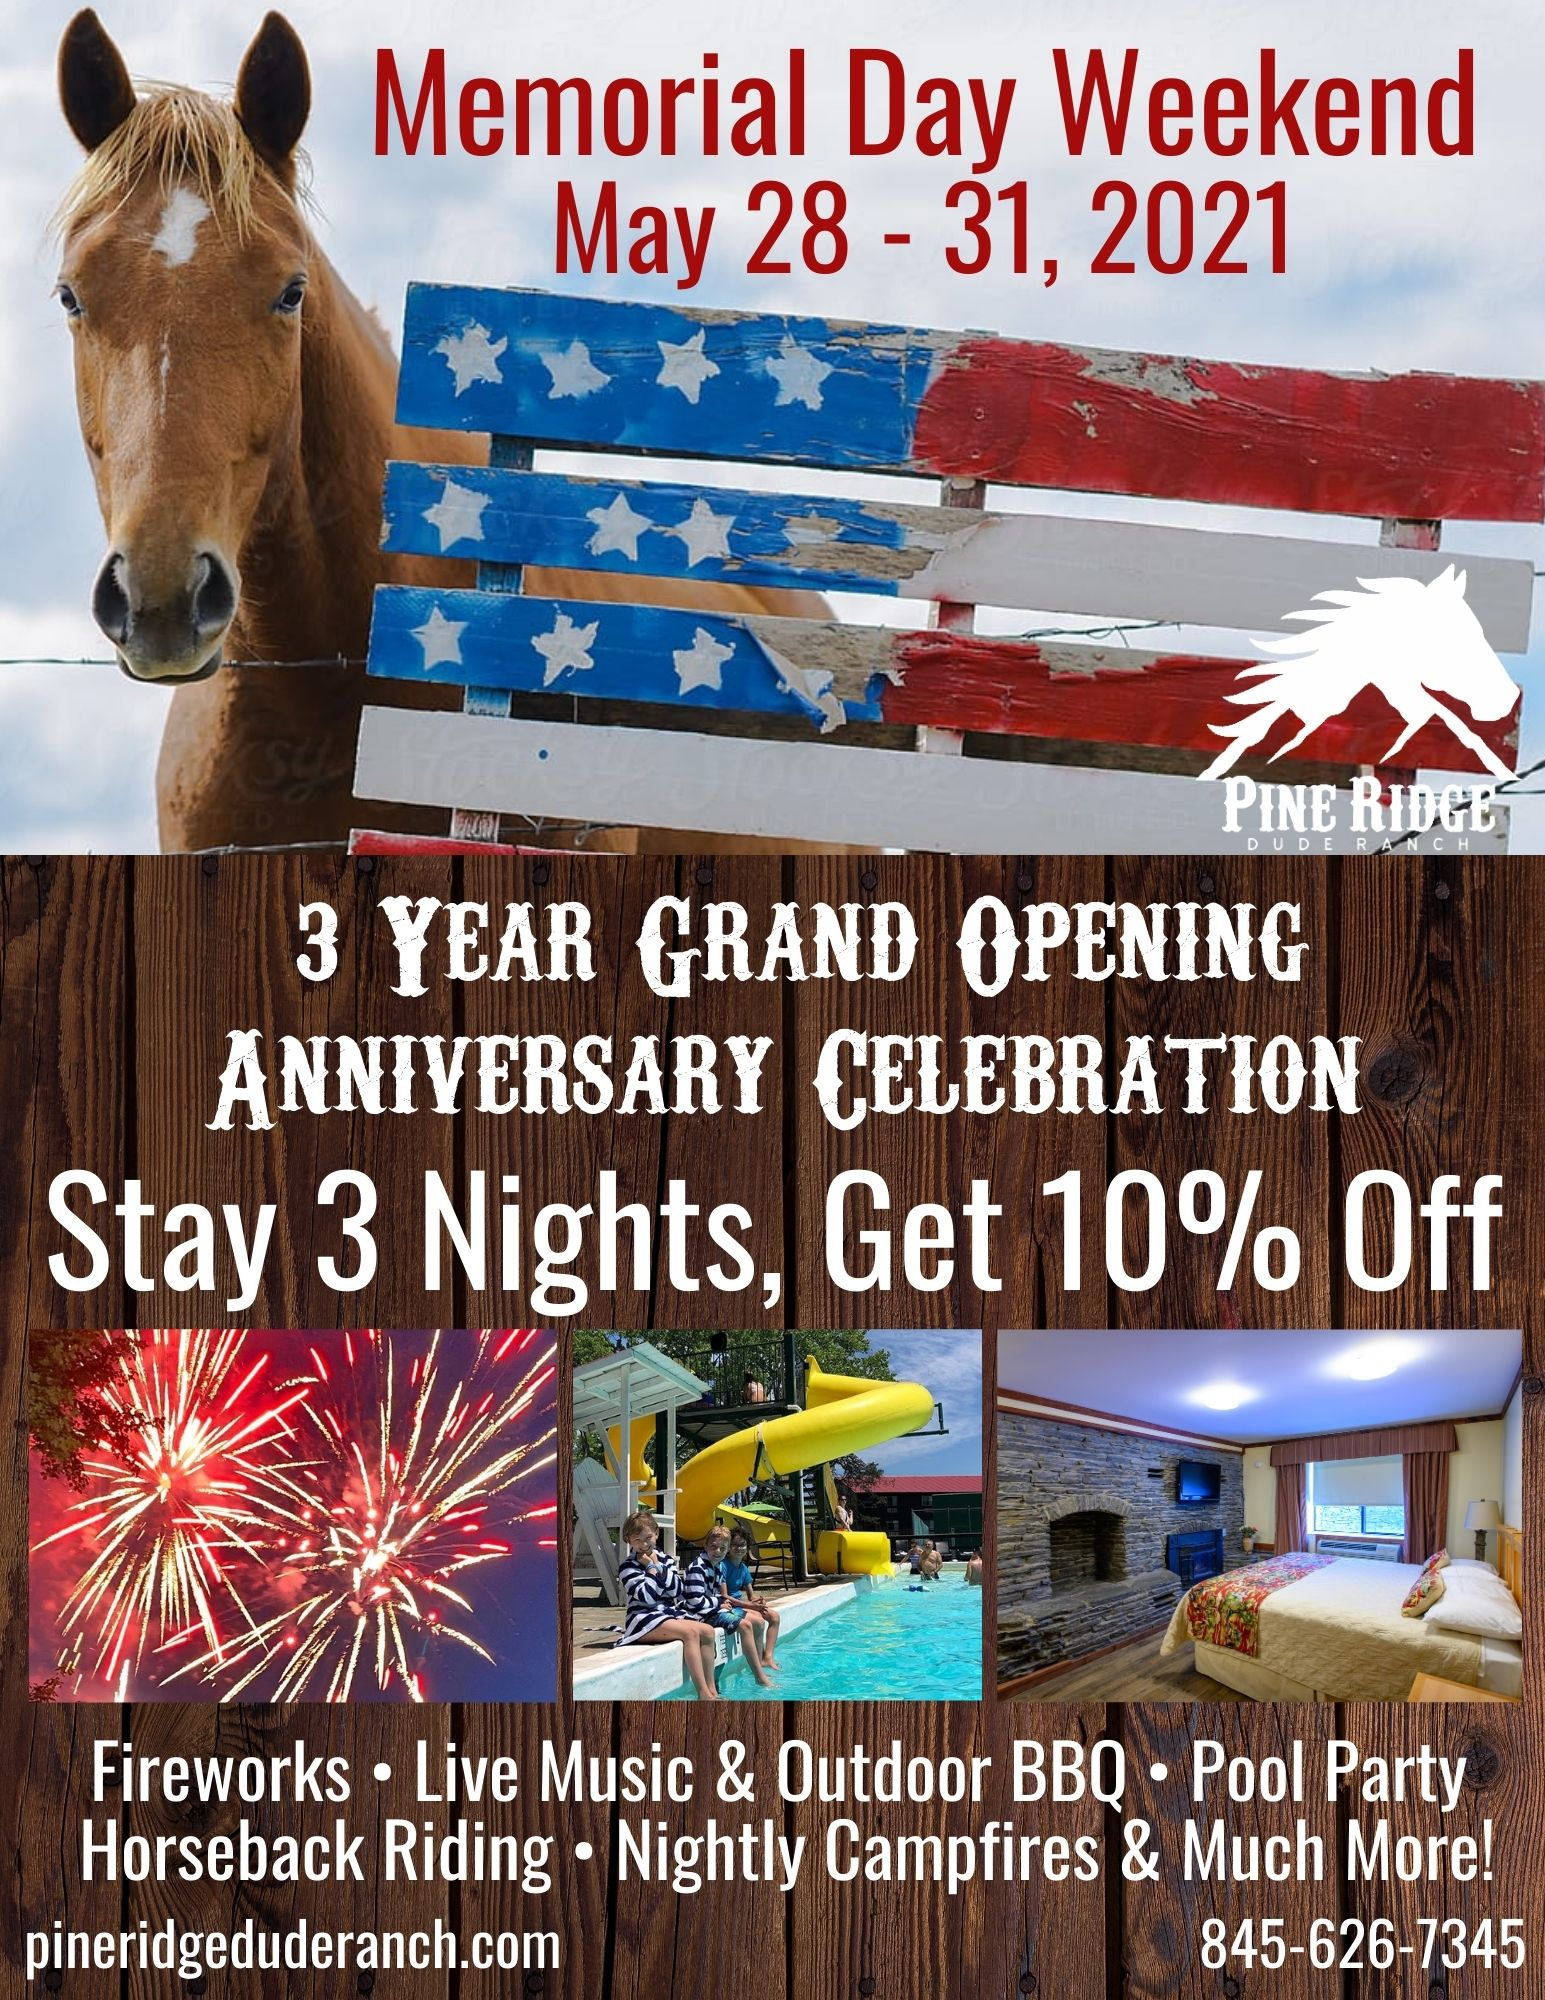 memorial day promotion may 28-31, 2021. stay 3 nights get 10% off, fireworks, live music and outdoor bbq, pool party, horseback riding, nightly campfires,